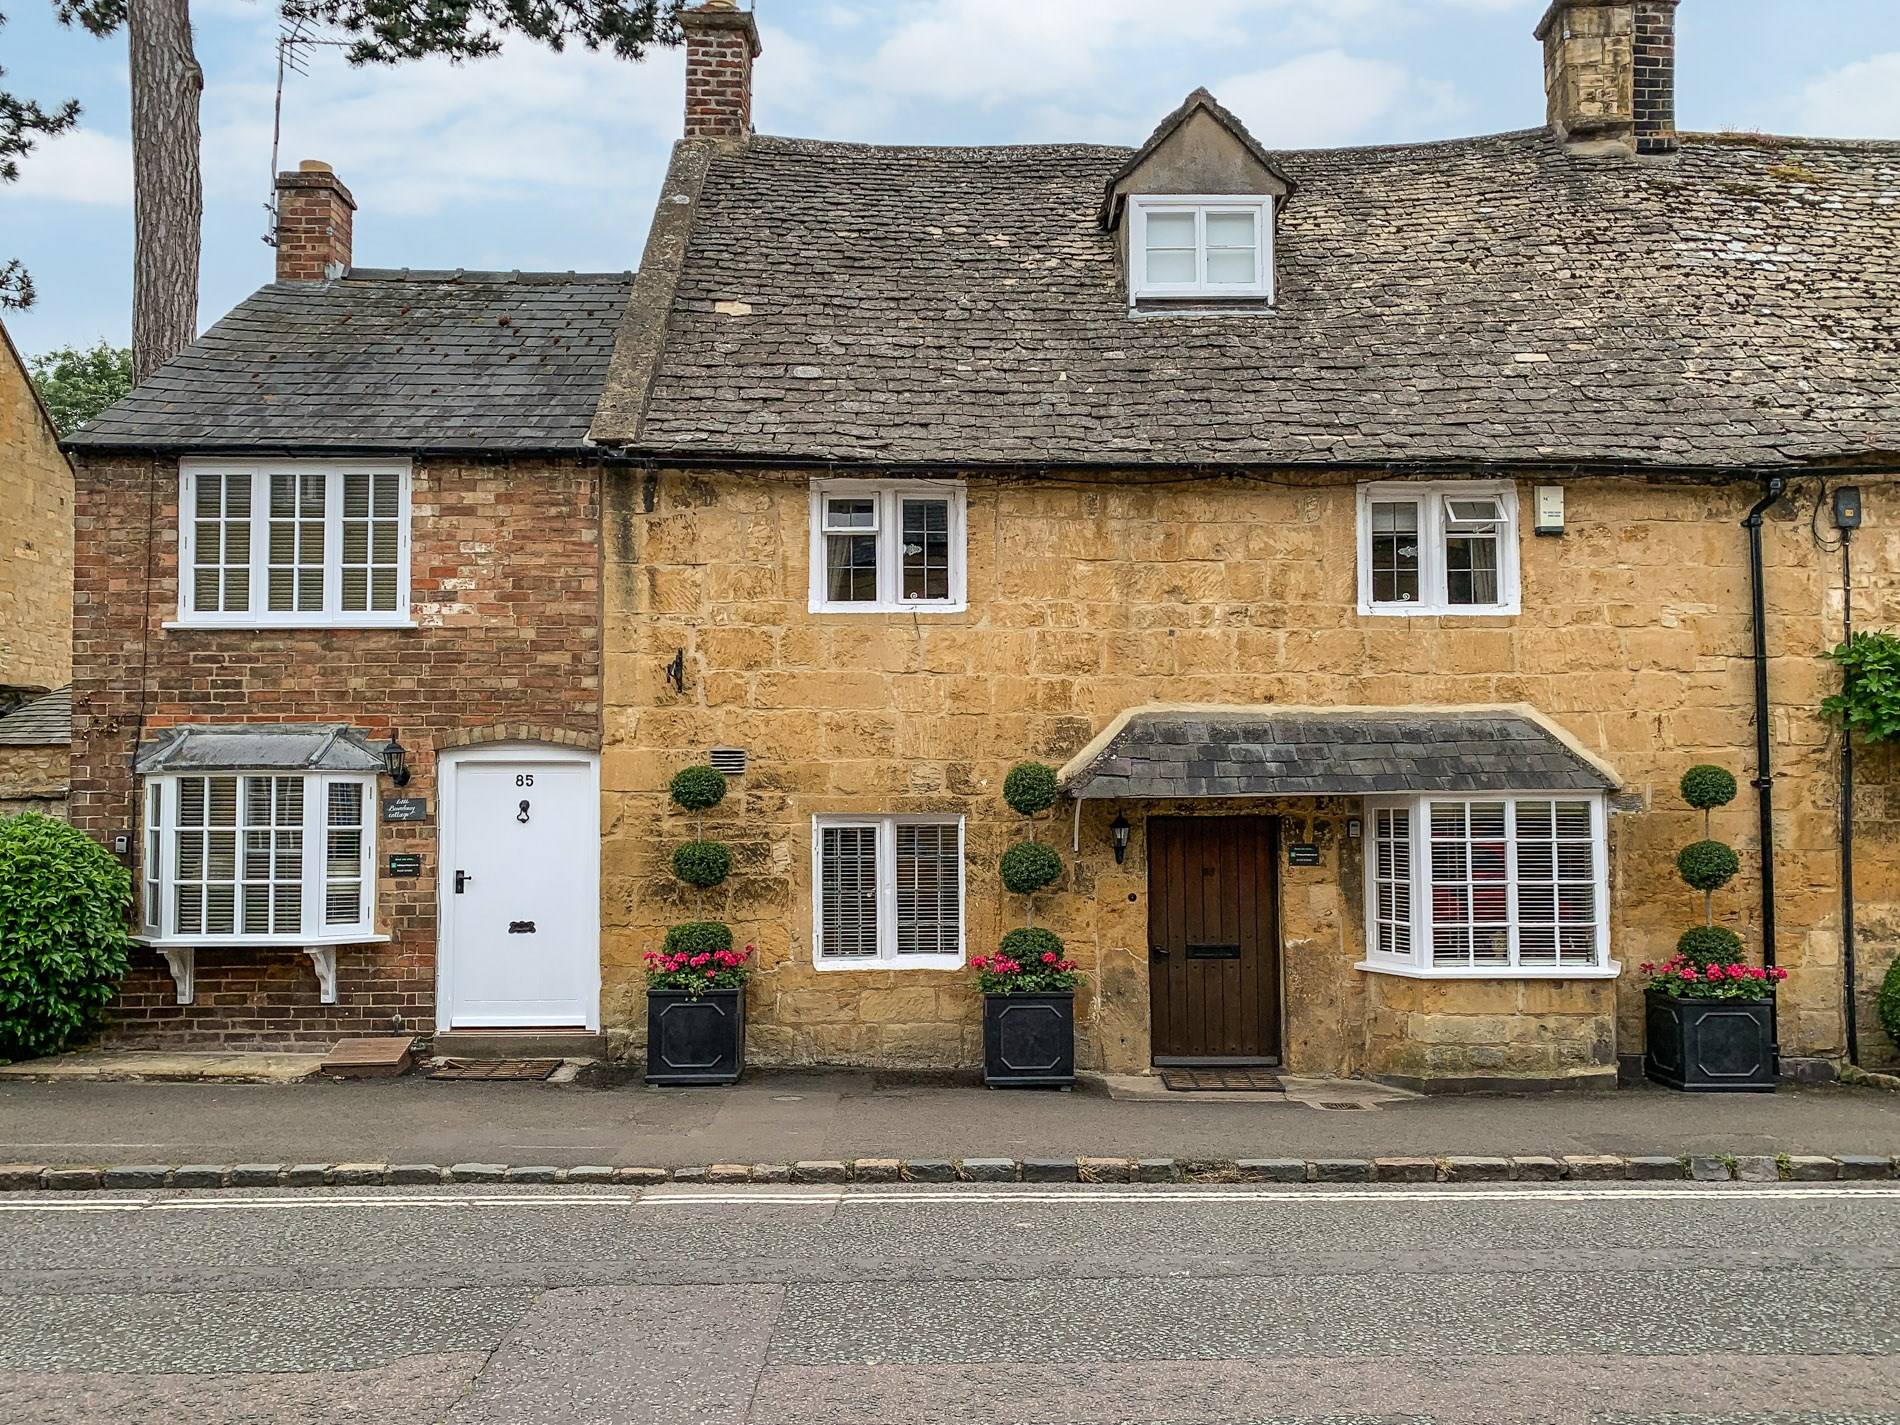 2 Bedroom Cottage in Worcestershire, Heart of England